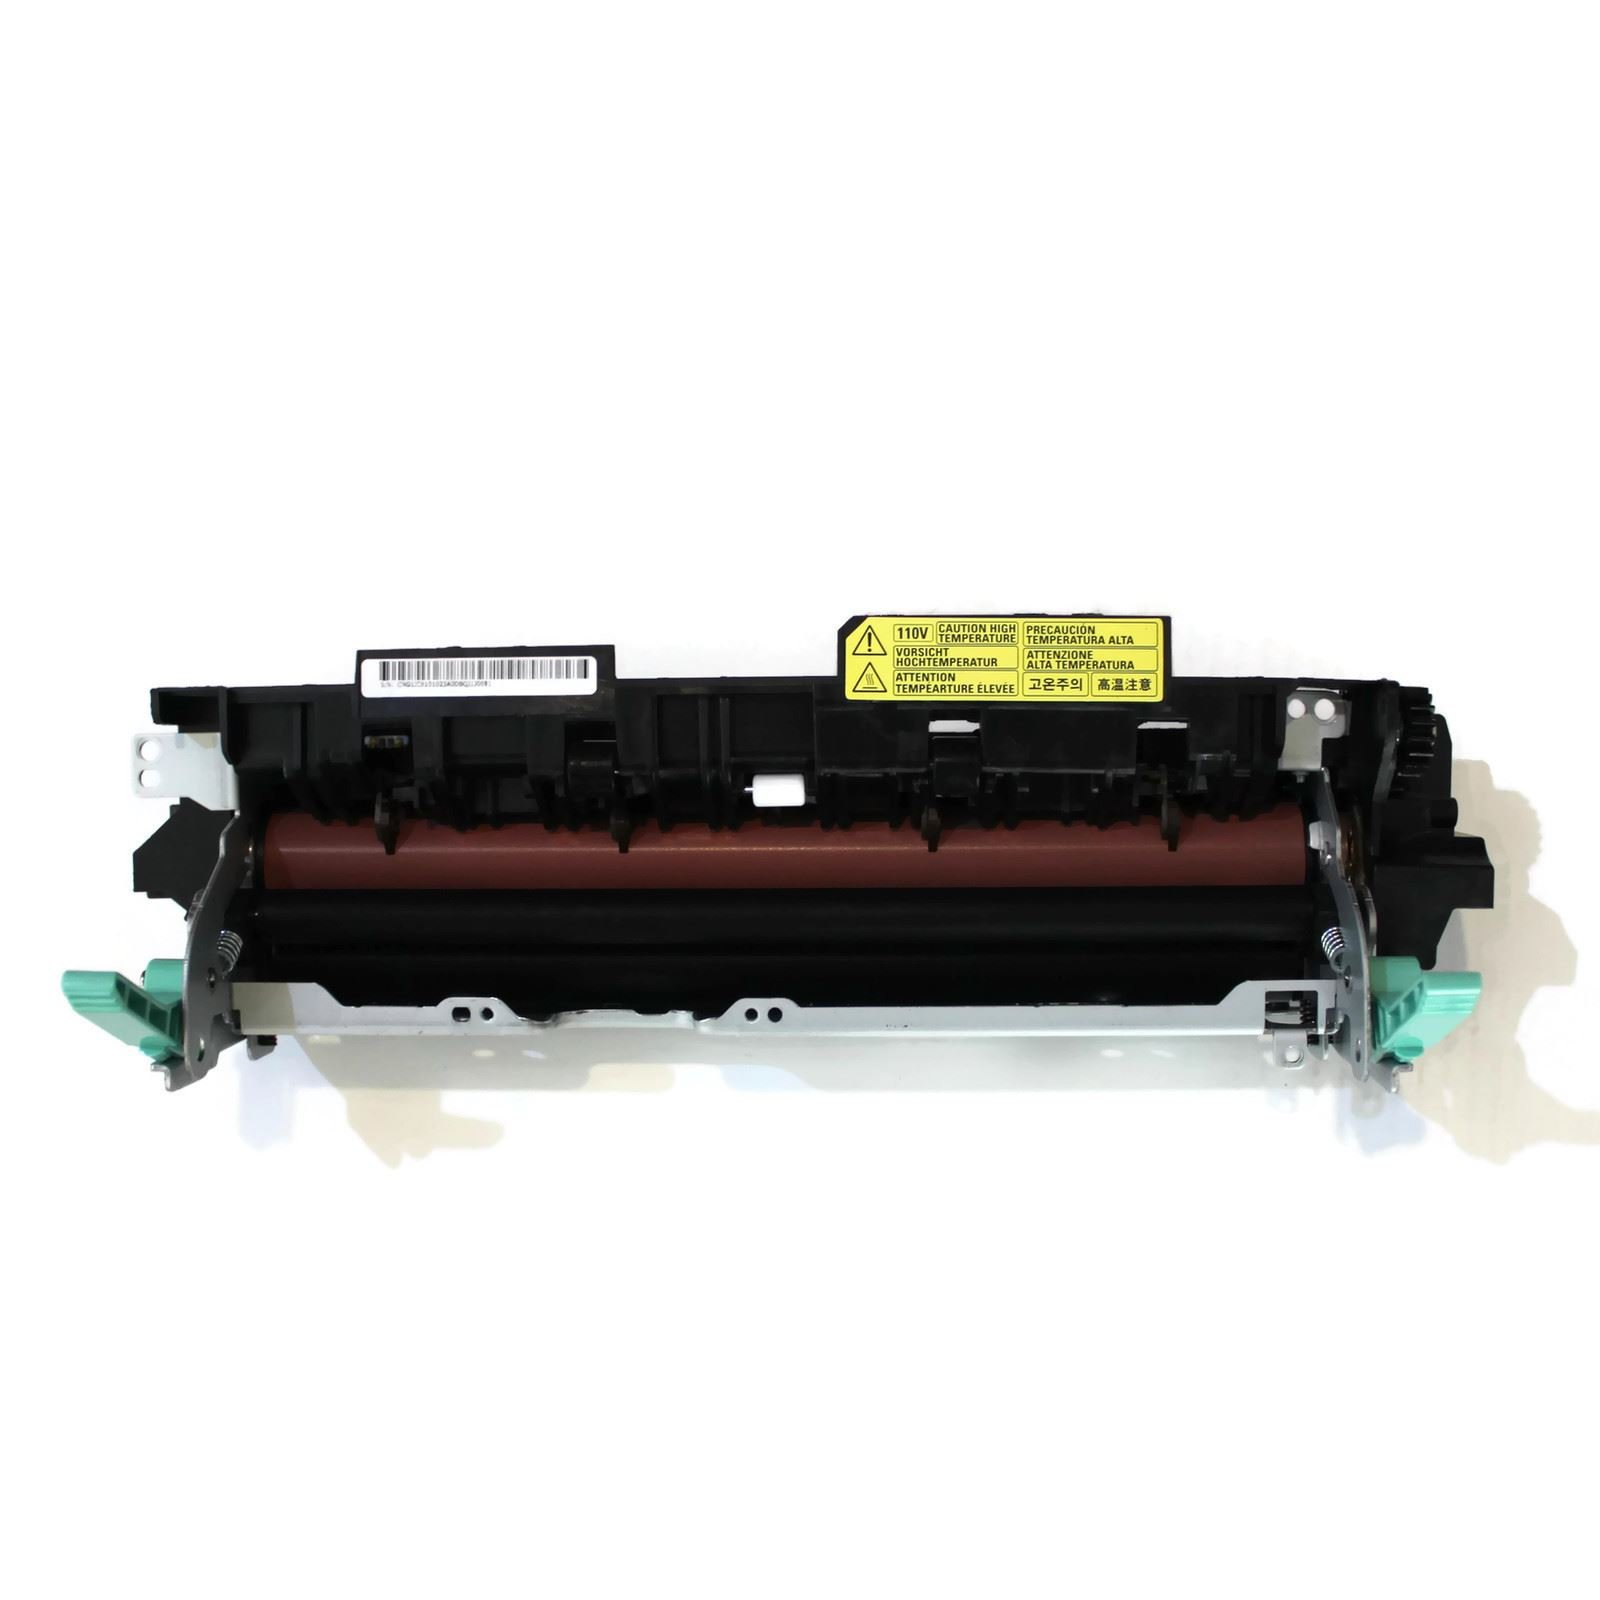 Compatible 110V Fuser Assembly for Xerox Phaser 3330 WorkCentre 3335 3345 printer 022N02856) by TM-toner (Image #1)